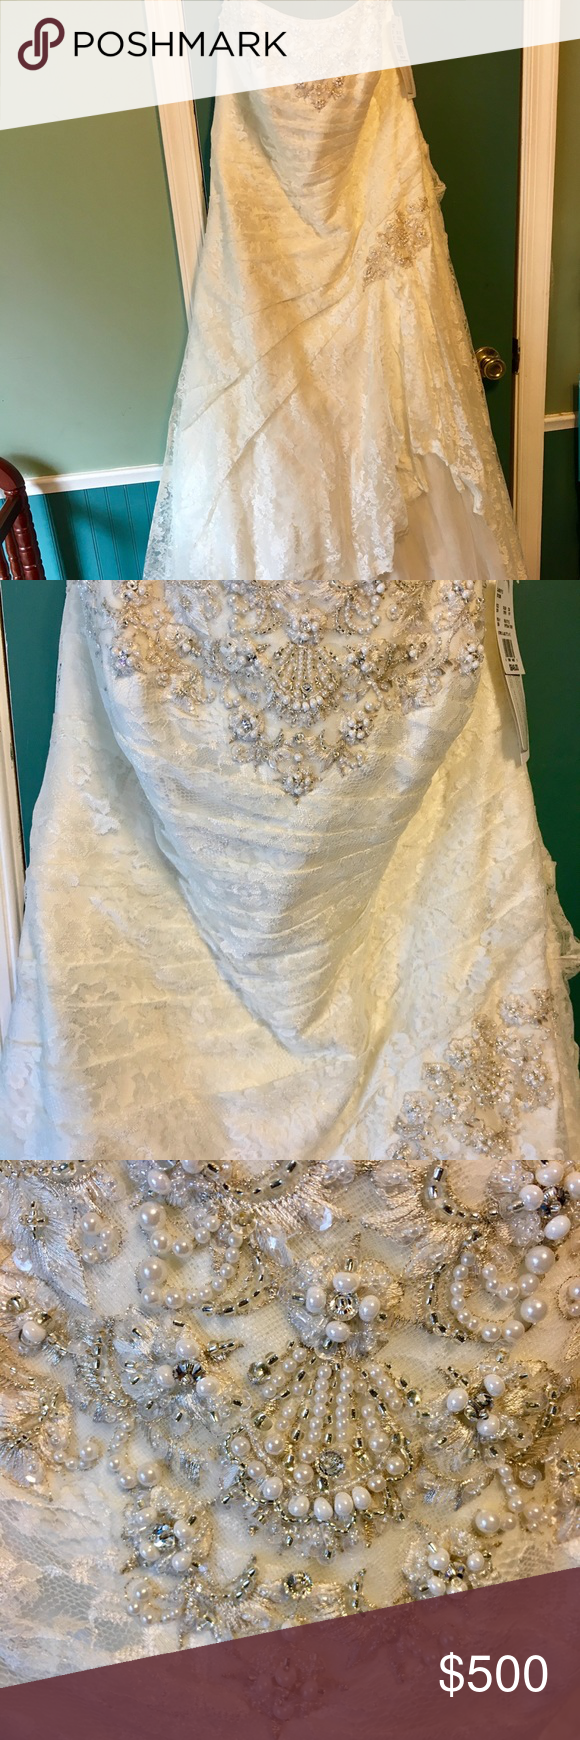 BNWT Davids Bridal size 20 wedding gown Absolutely gorgeous ivory lace David's bridal gown with amazing intricate beading. Brand new, never worn or altered. This dress is selling for $849 in store right now. Pictures do not do it justice. It is a size 20W...it has a corset back so it can go up or down a size or two (pardon lacing job shown, I just laced it quick for picture). The dress is strapless and has a gorgeous train. David's Bridal Dresses Wedding